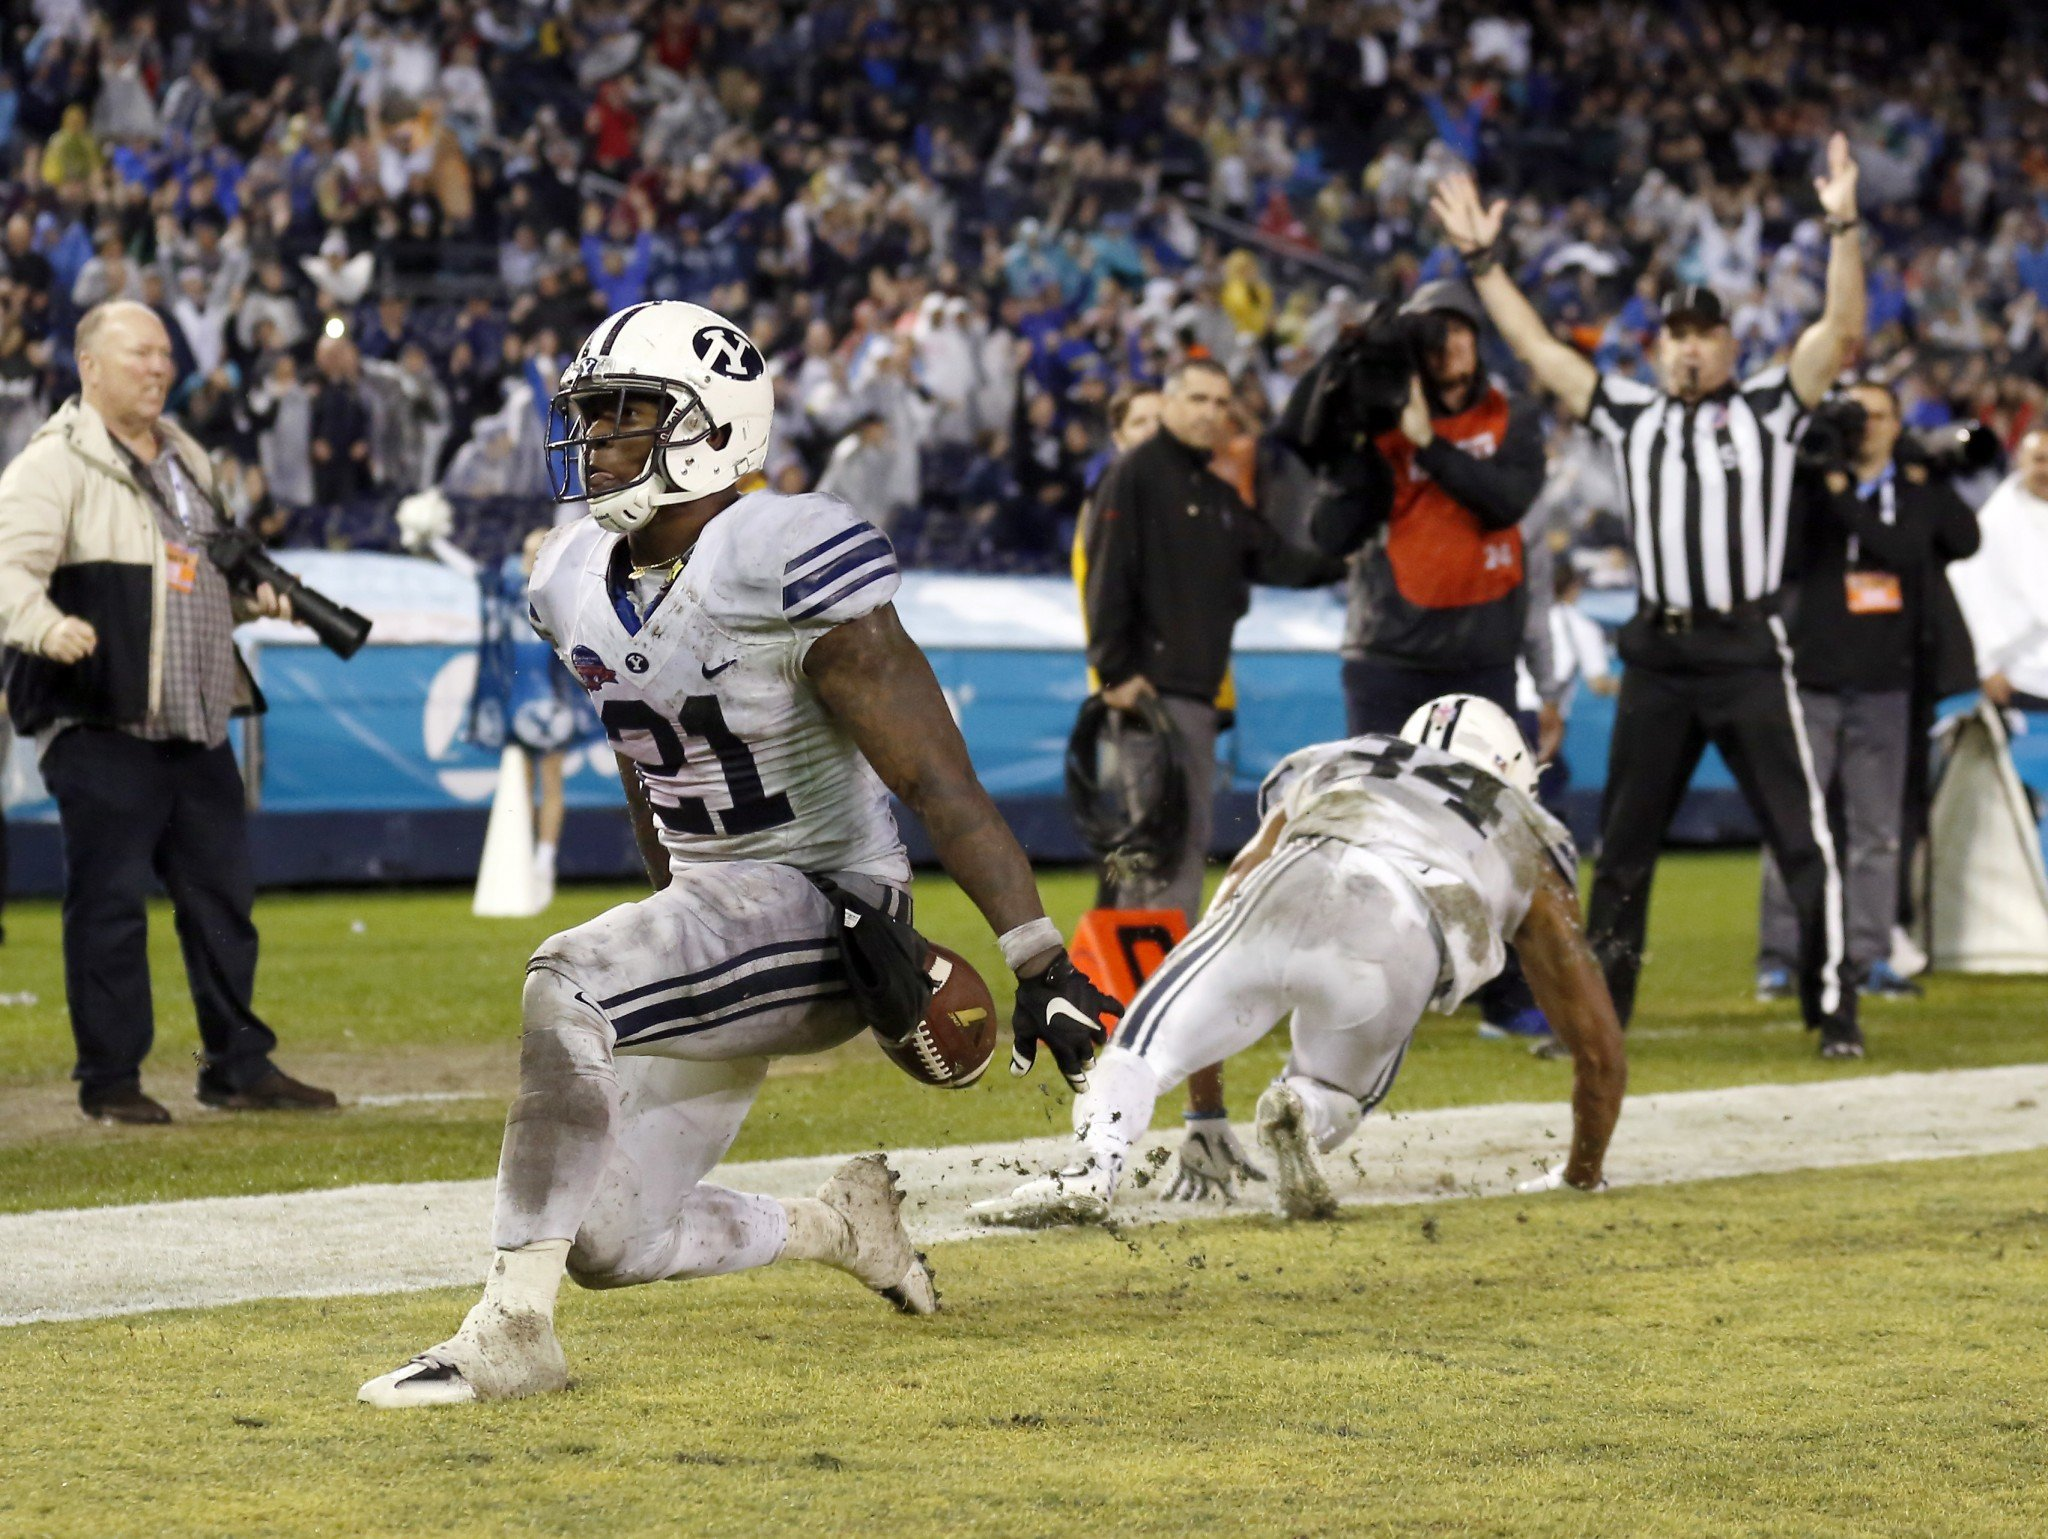 BYU RB Jamaal Williams rushed for 210 yards and a touchdown in the win (AP)